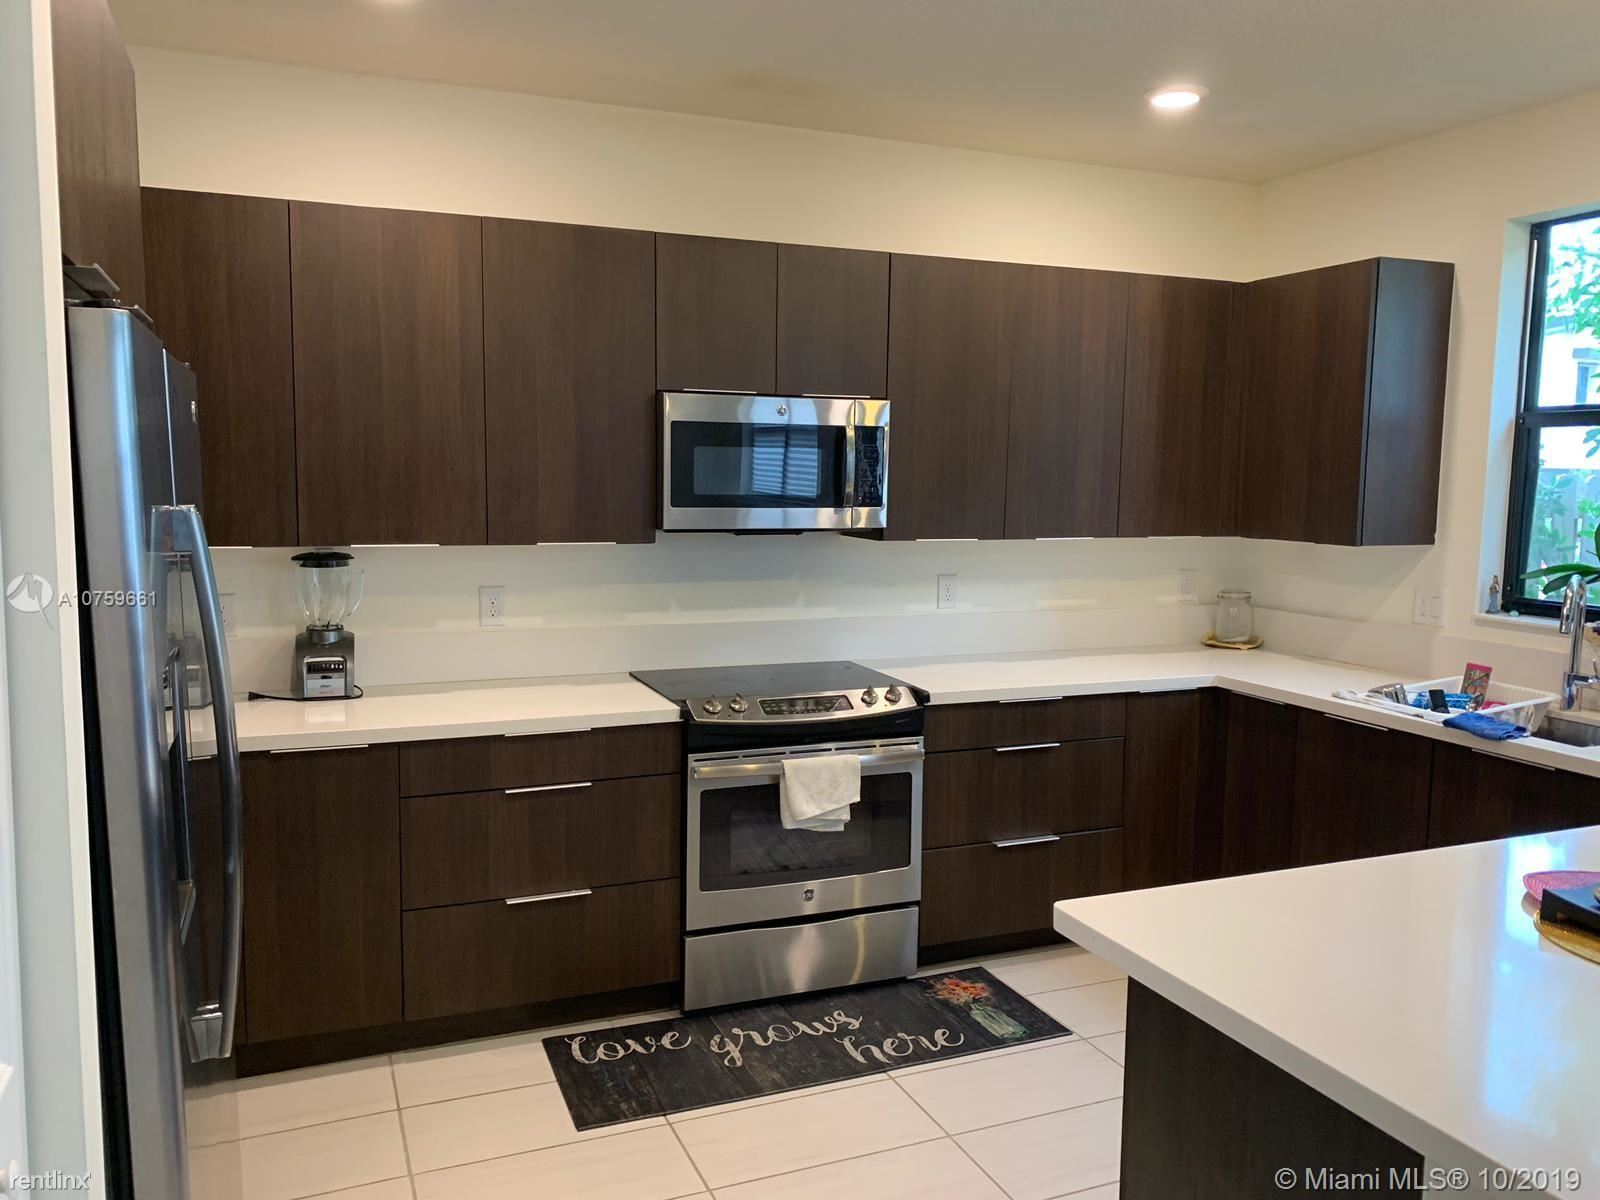 10515 NW 78th Ter, Doral, FL - $2,950